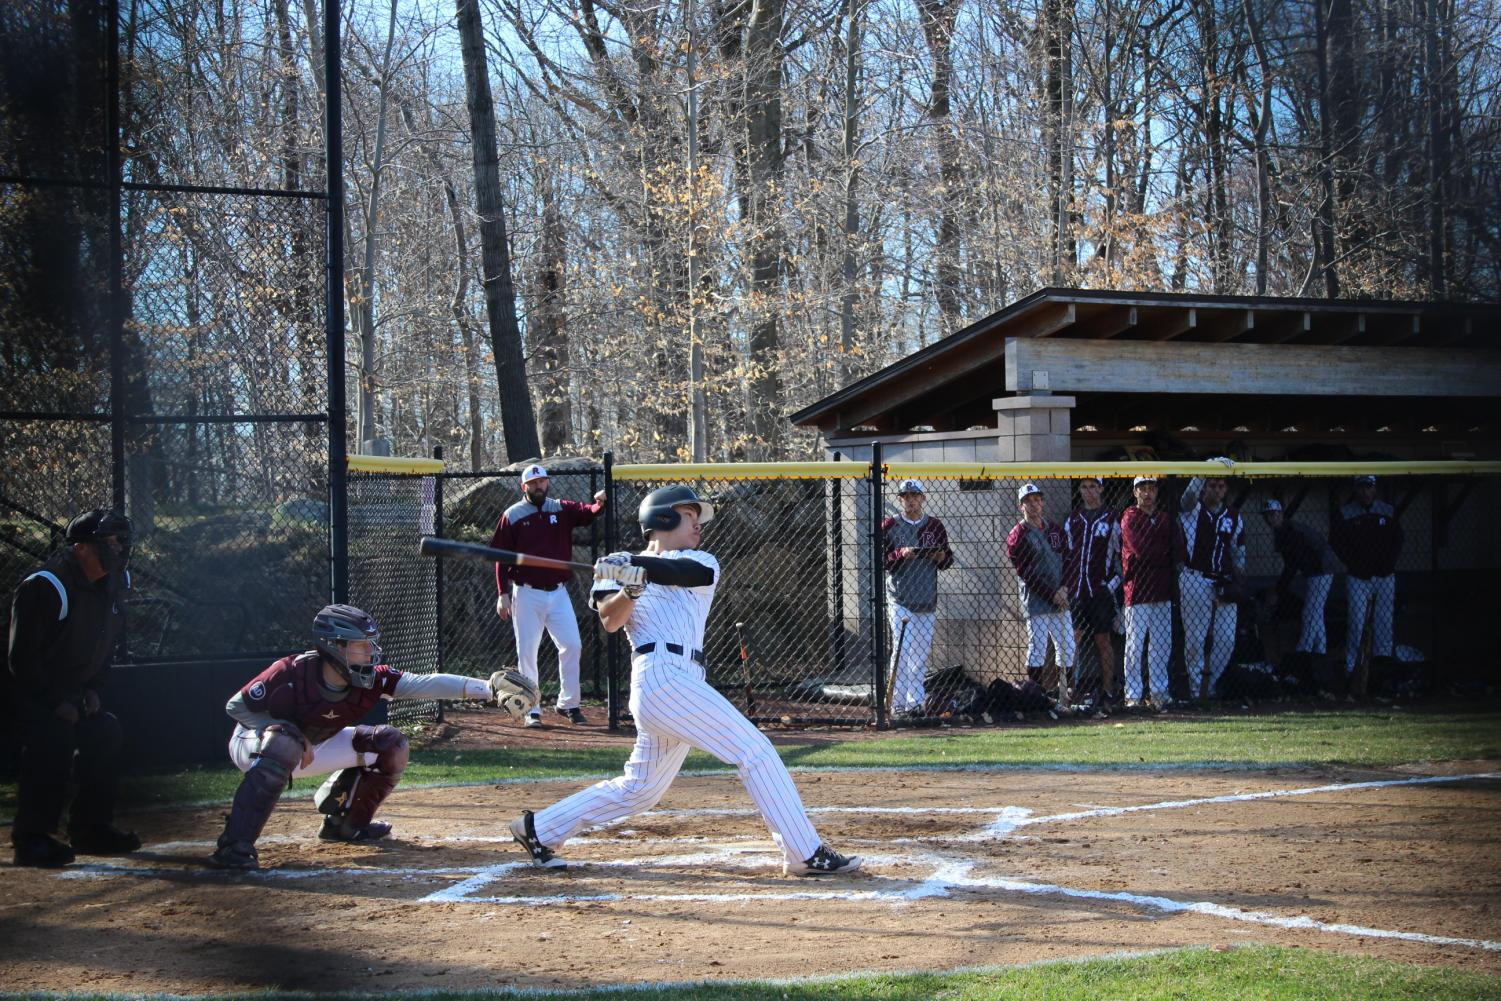 From making the varsity team as a freshman to facing challenges in his third season, Jason Mark has proven integral to the baseball team's success. Mark has overcome many challenges and worked hard to be able to step onto the field healthy this season.